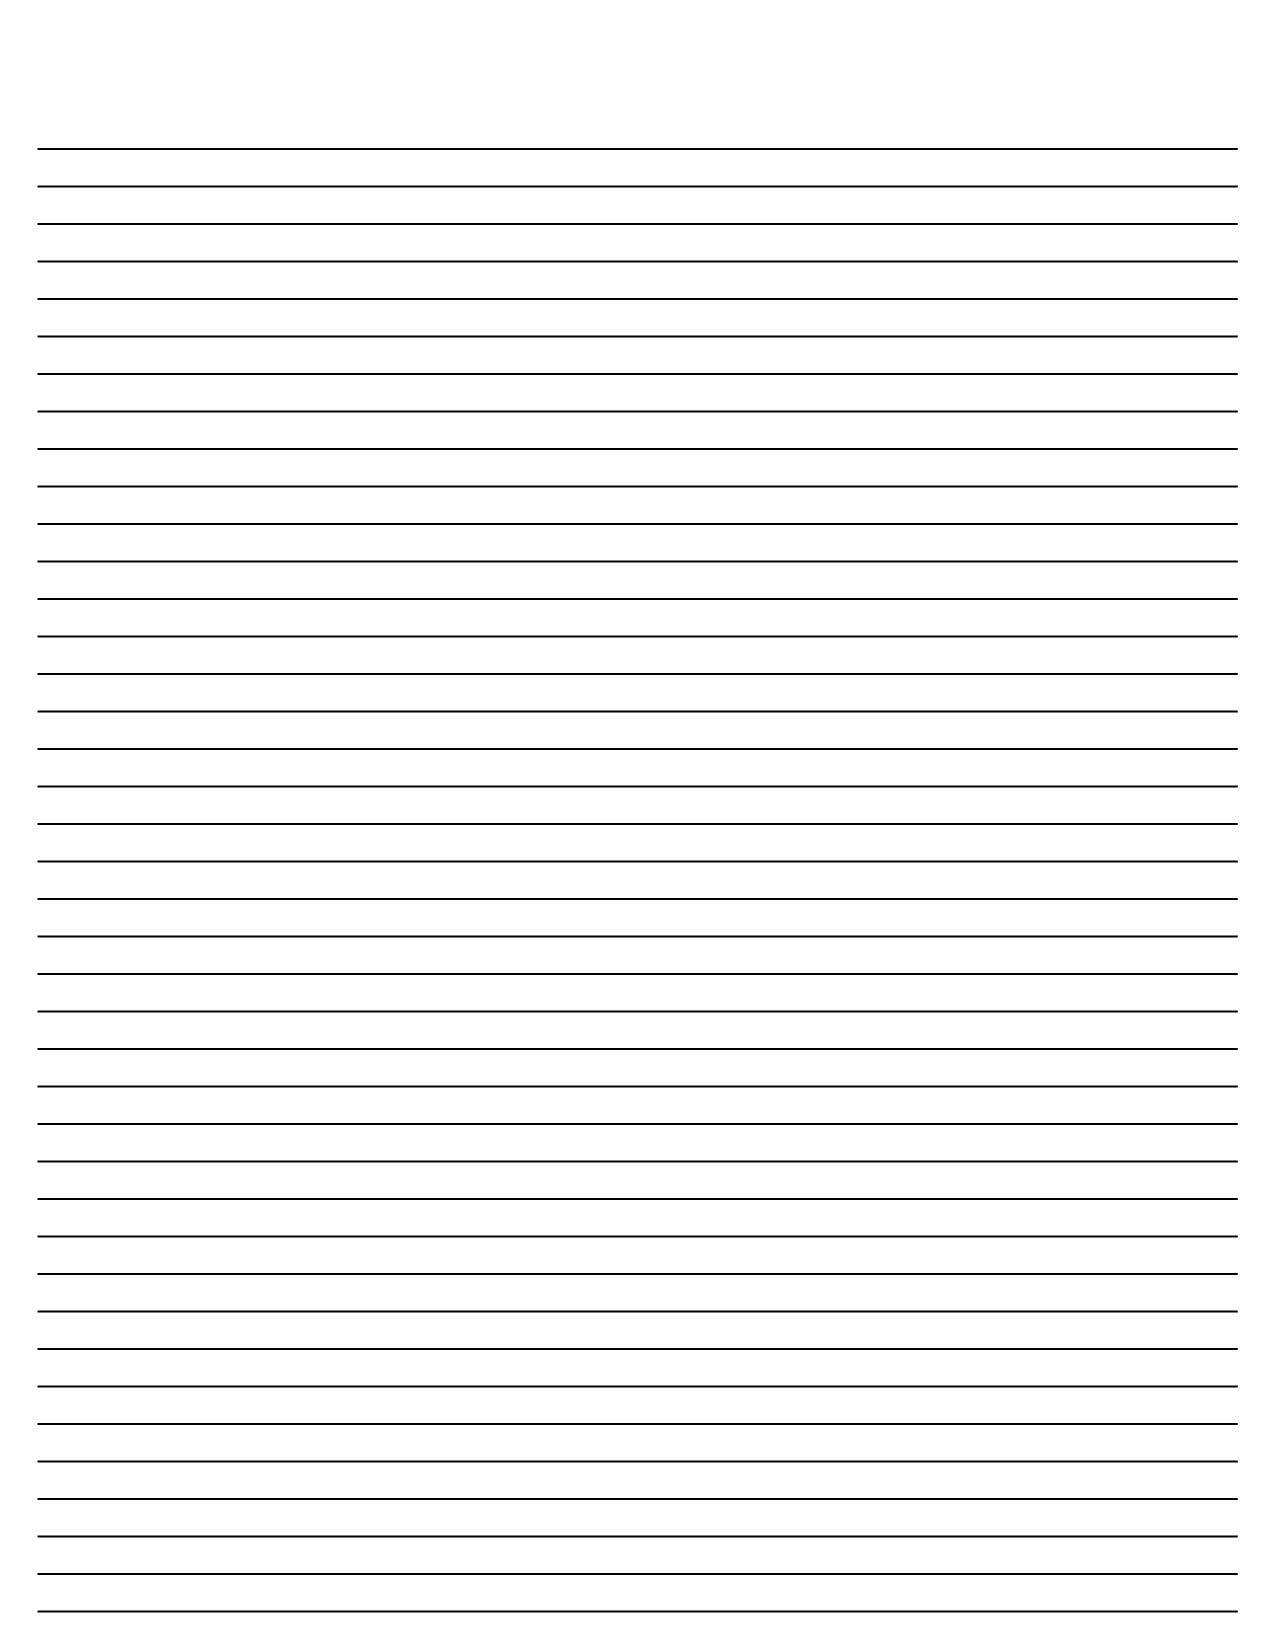 8 Best Printable Blank Lined Paper Template